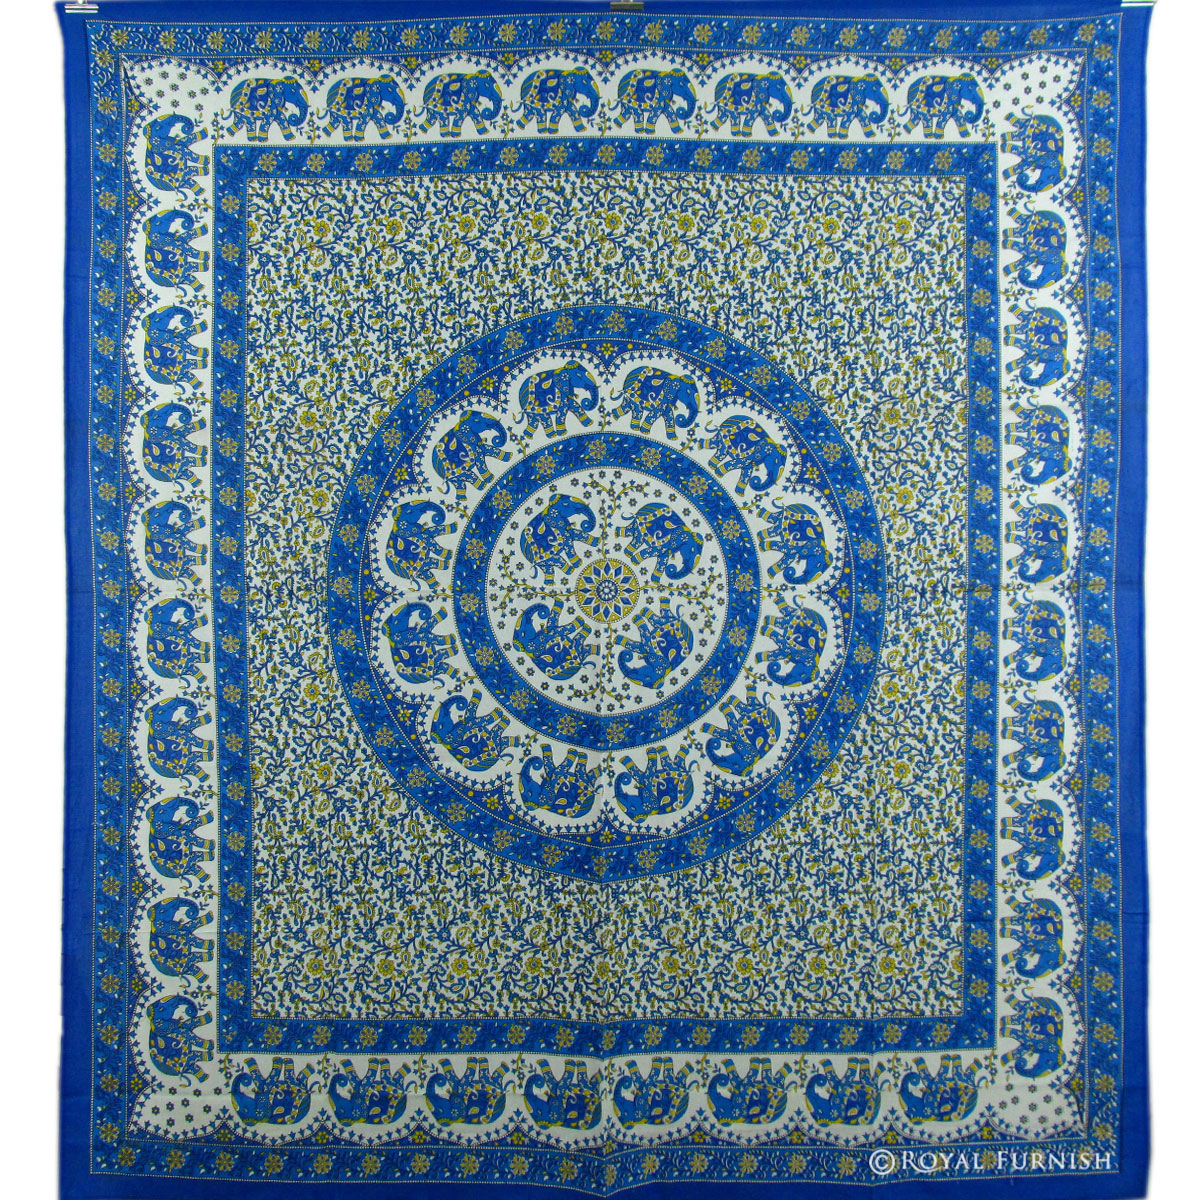 Decorative Wall Hanging Tapestry : Blue indian elephant mandala dorm decor tapestry wall